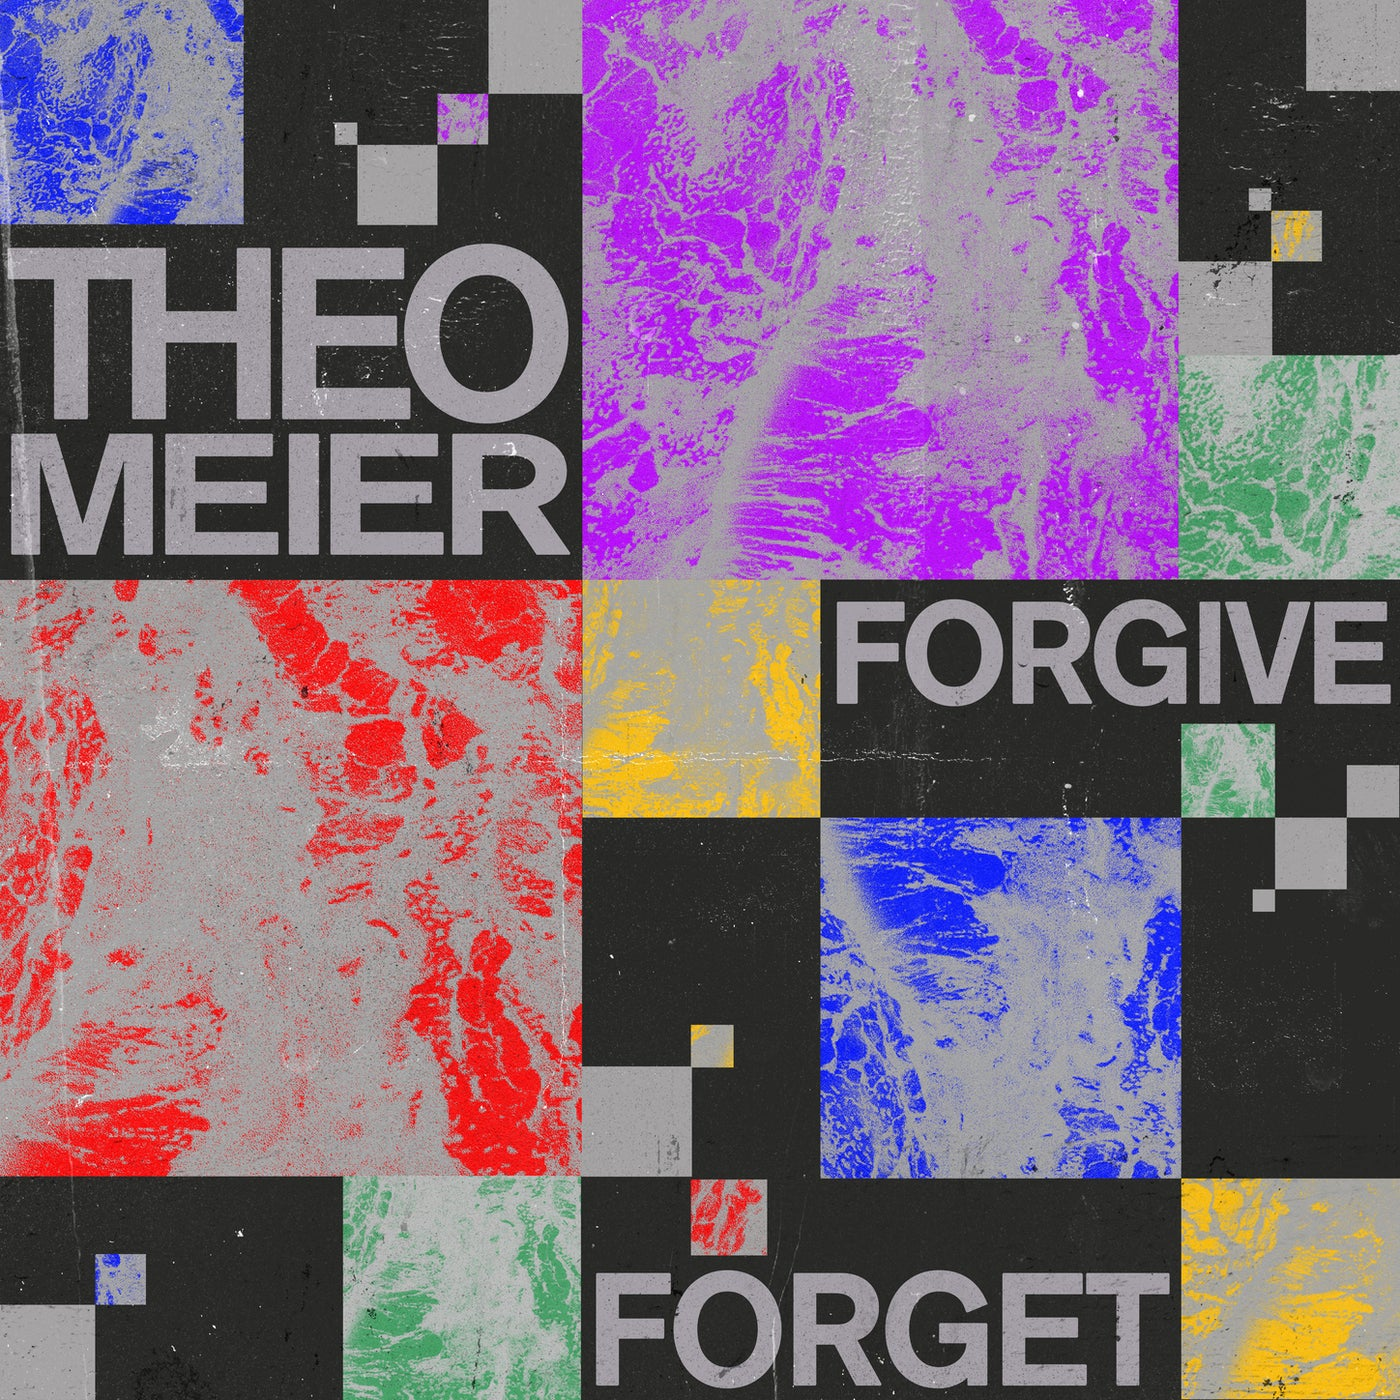 Download Forgive Forget on Electrobuzz